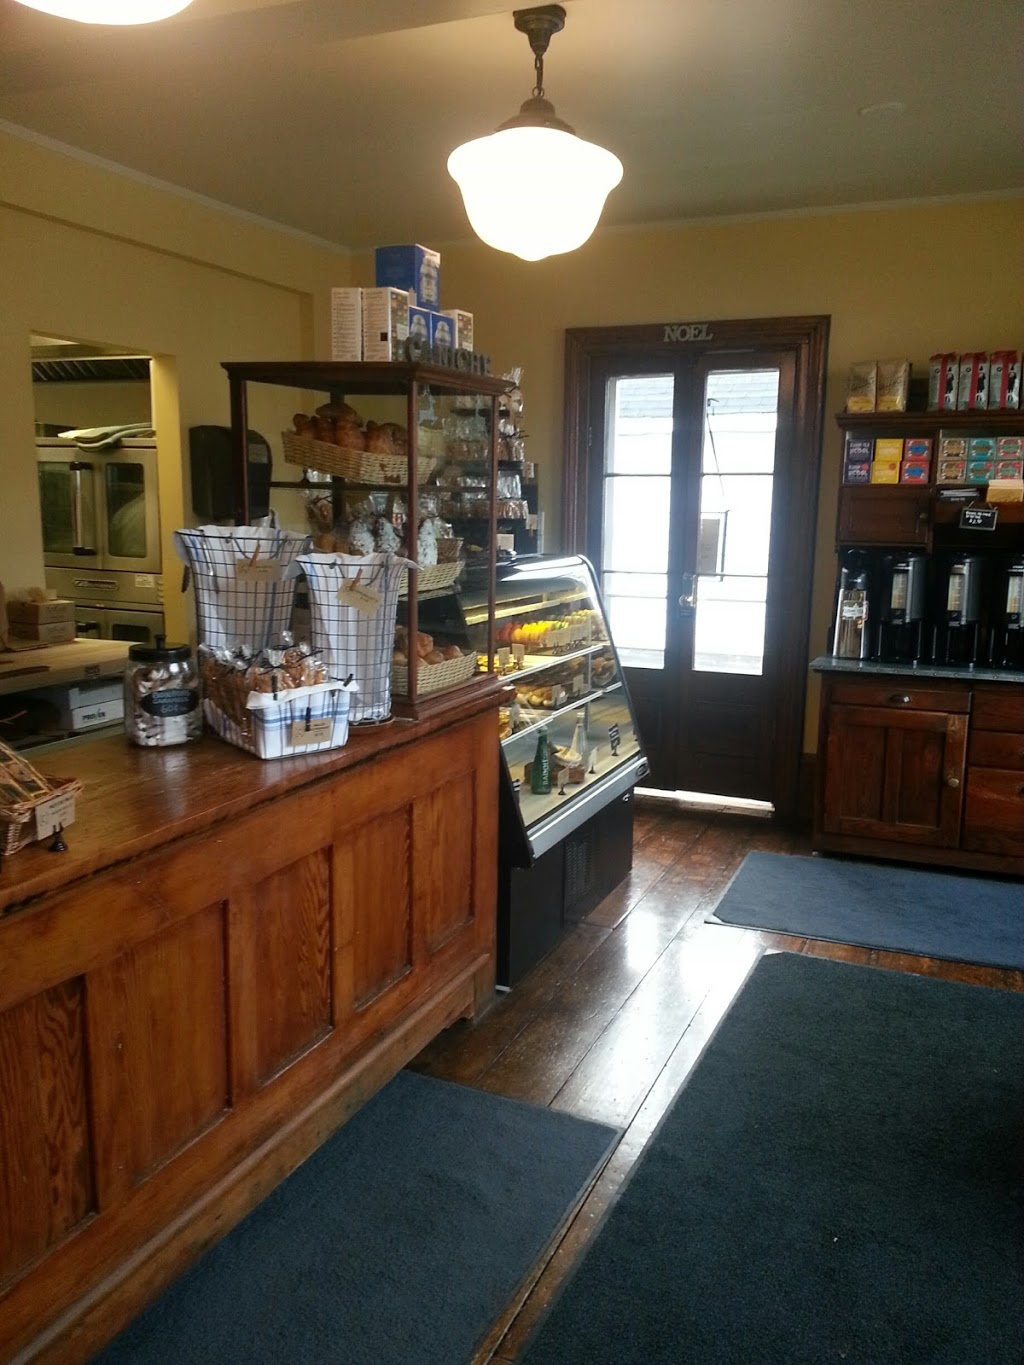 Caniche French Bakery | bakery | 346 Wilson St E, Ancaster, ON L9G 2C2, Canada | 2892397475 OR +1 289-239-7475